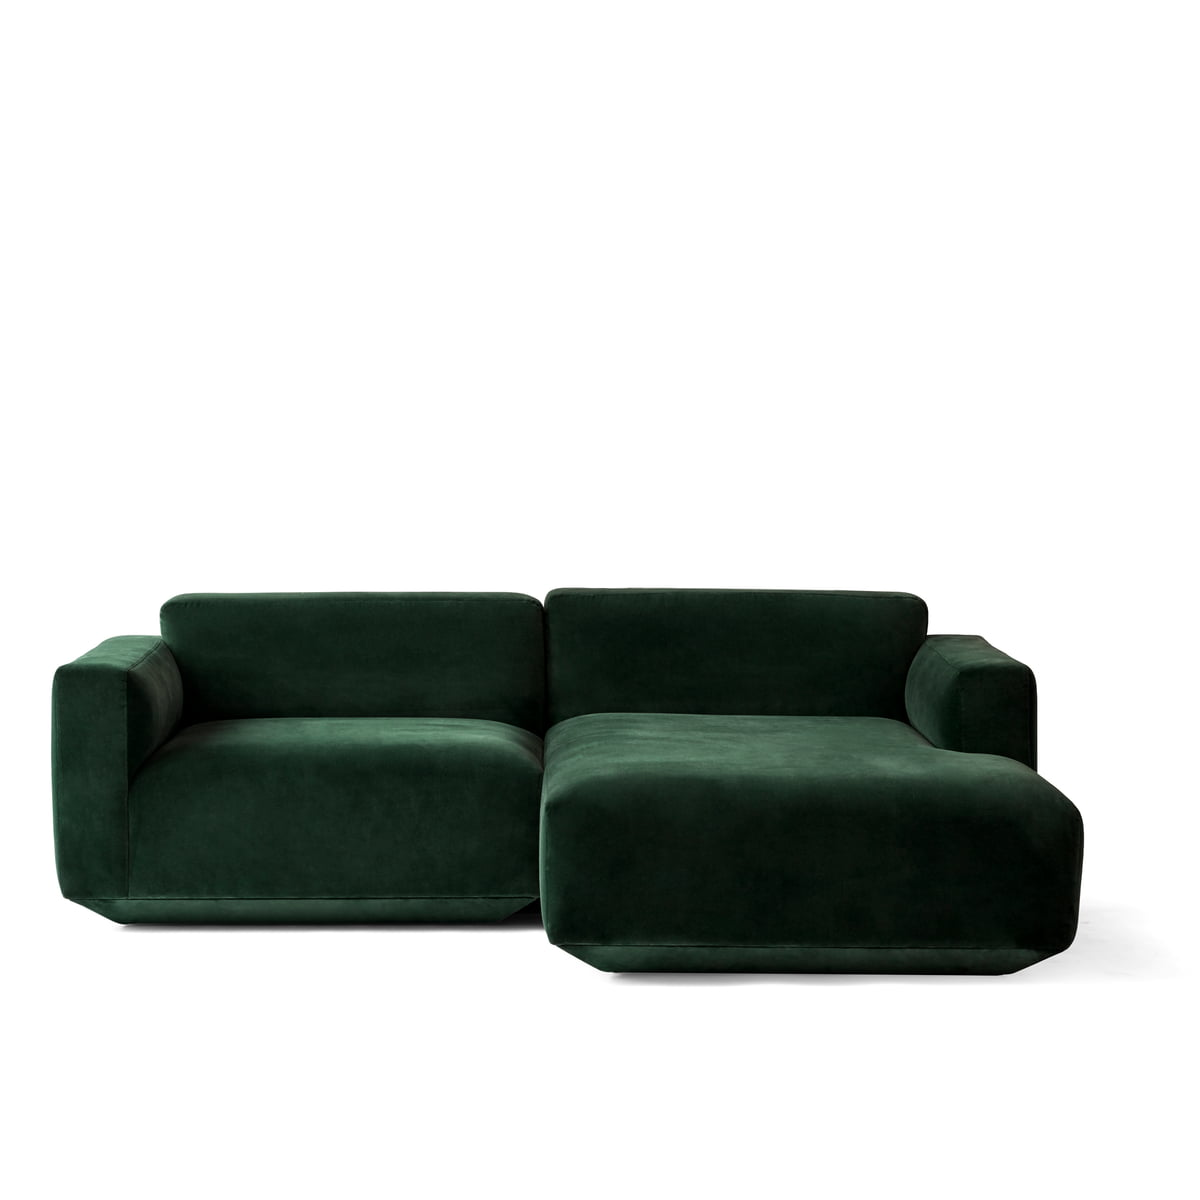 Develius Eck-Sofa von &Tradition | Connox